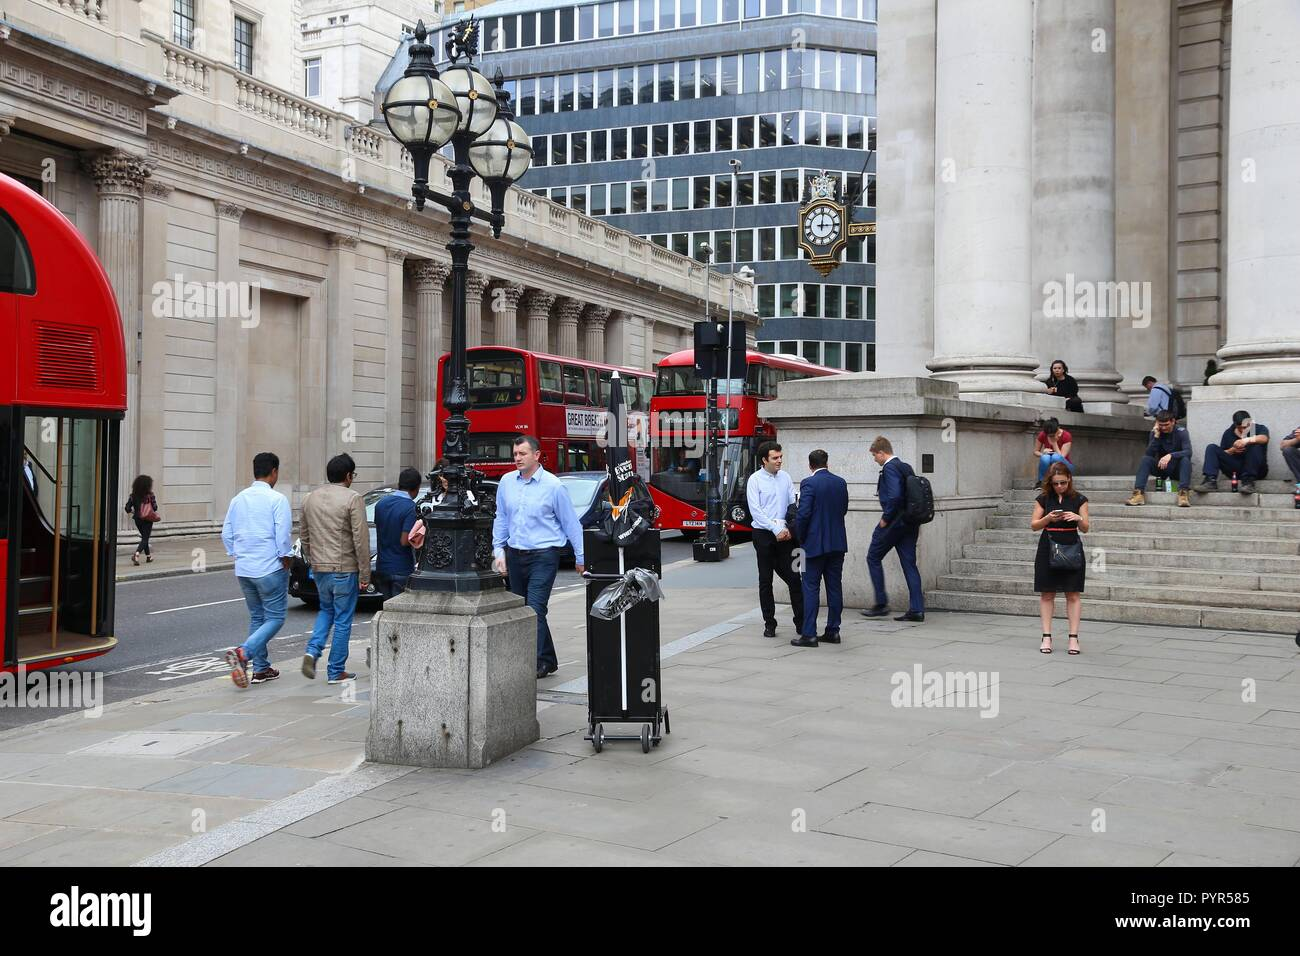 LONDON, UK - JULY 8, 2016: People visit Bank Junction in London, UK. London is the most populous city in the UK with 13 million people living in its m - Stock Image